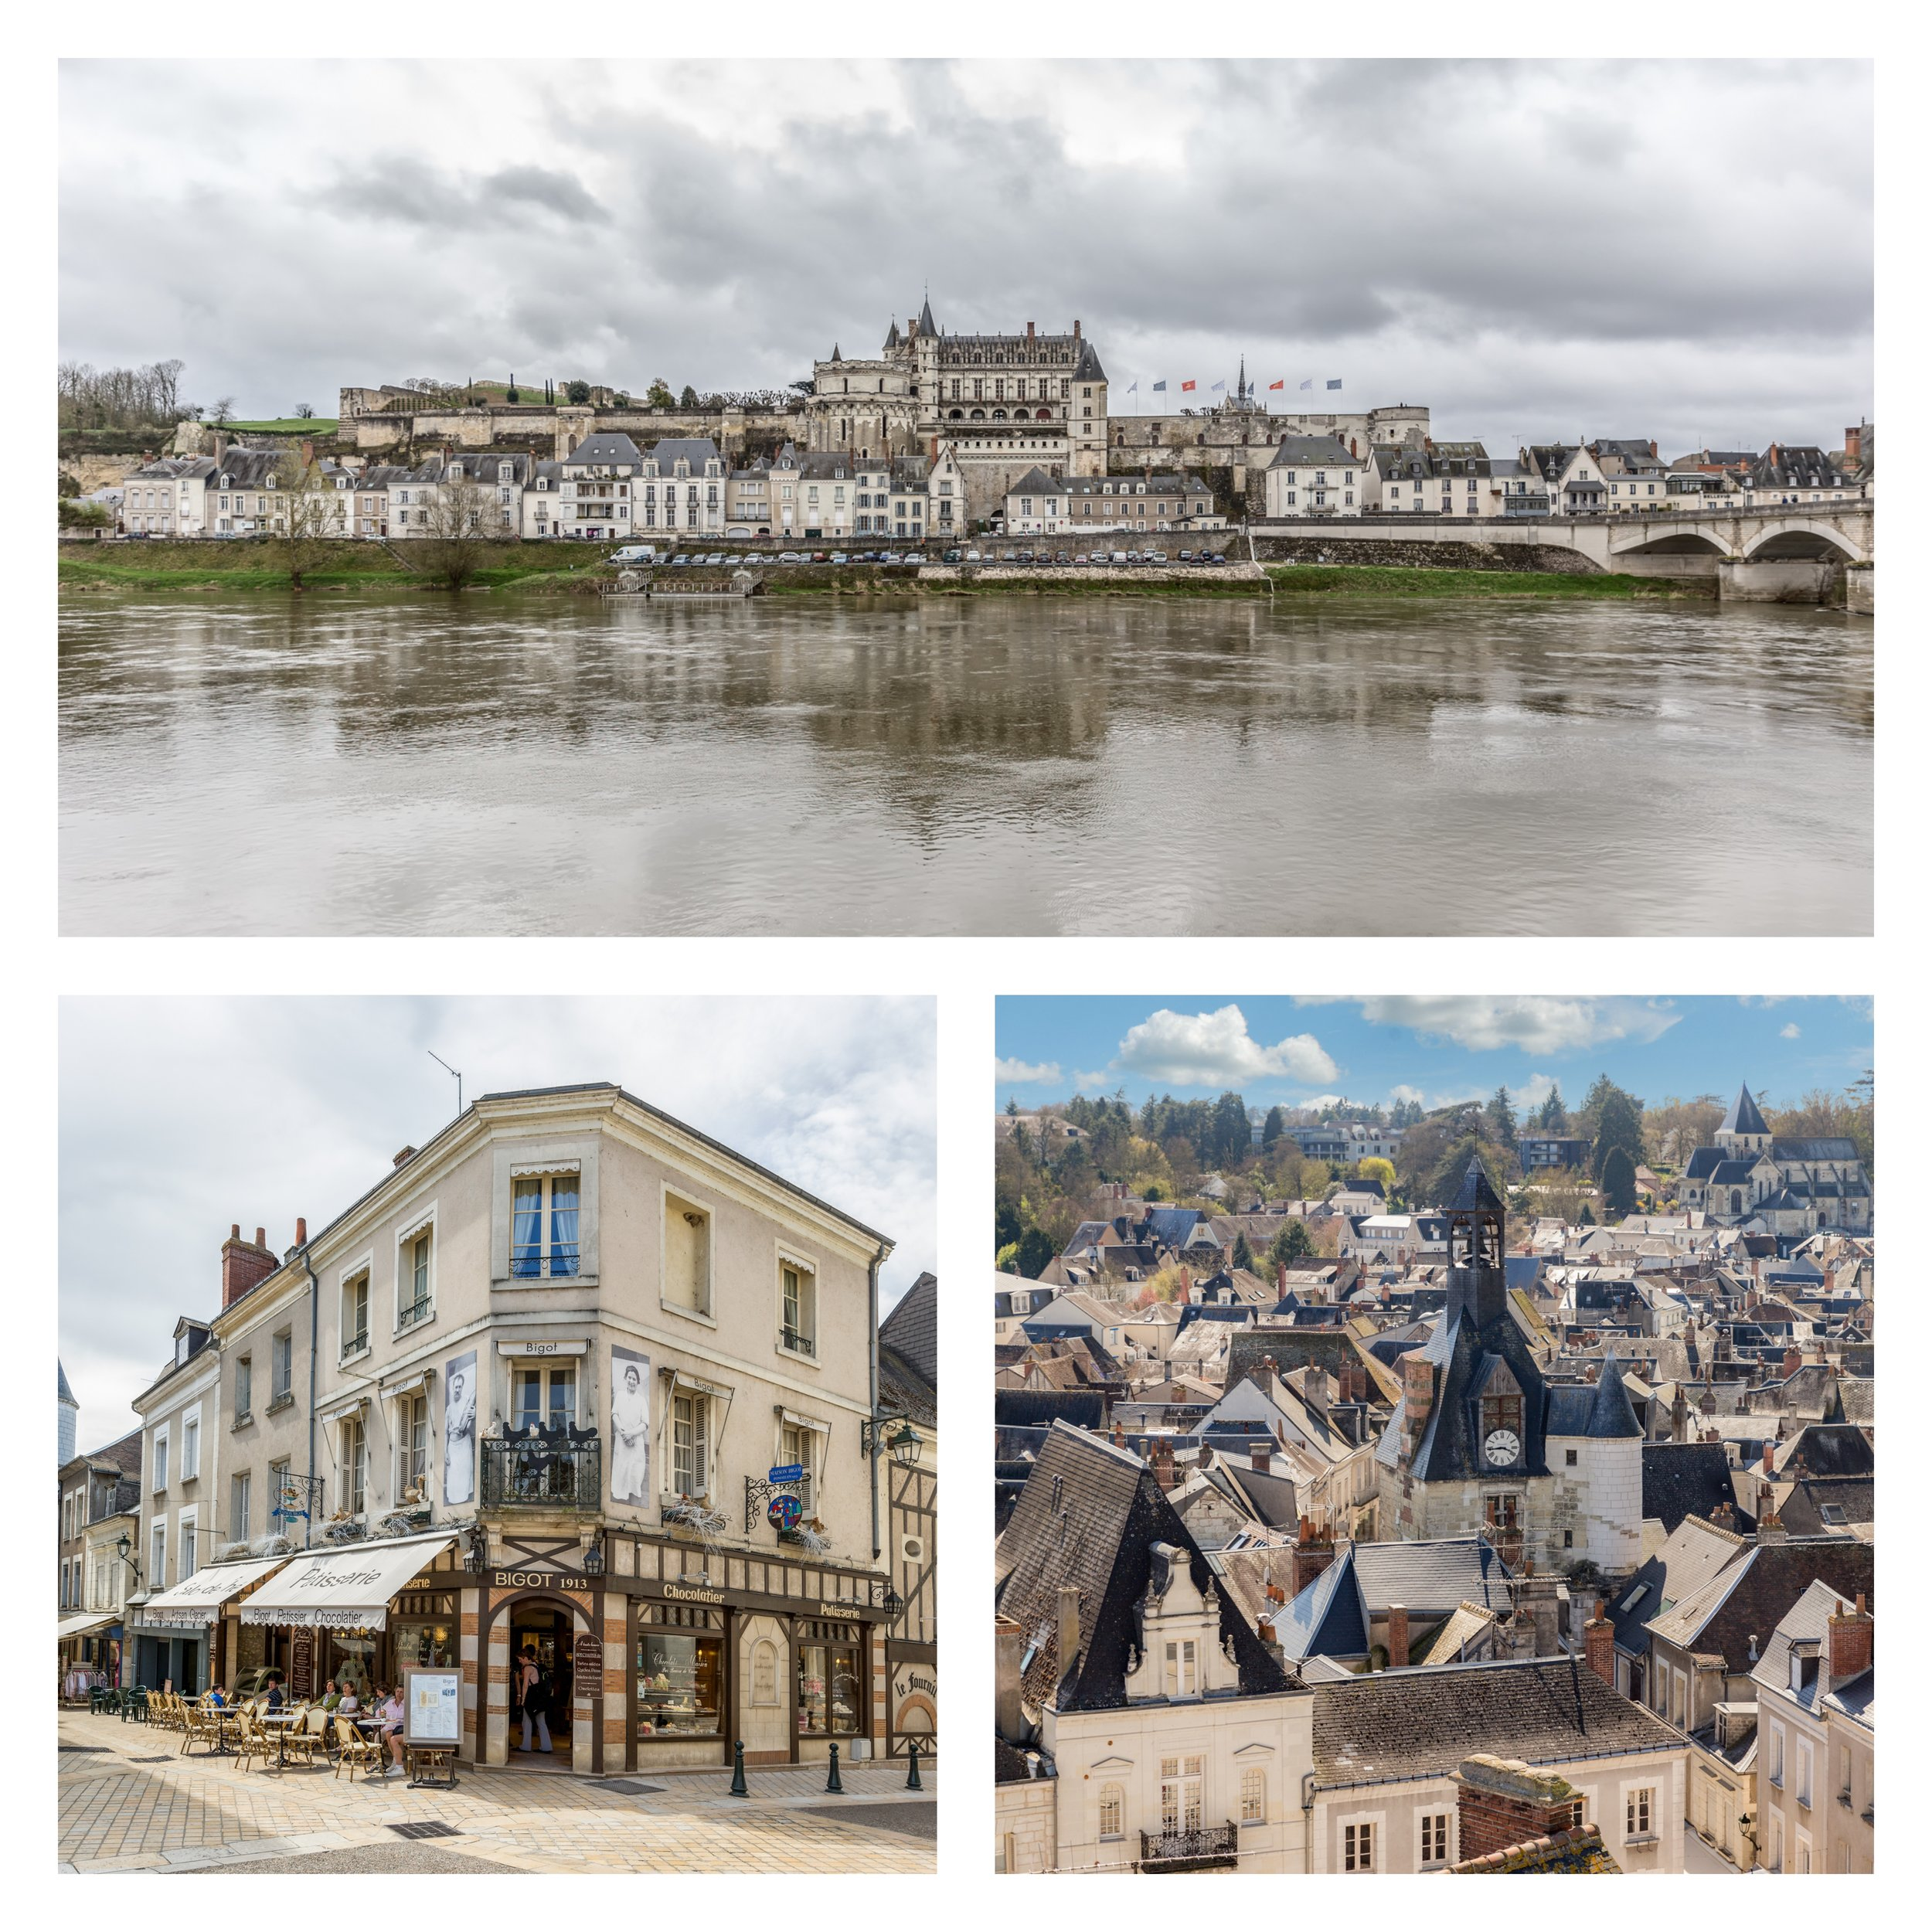 Bespoke Photography Tour - Amboise walking tour with photography tuition from €80 for 4 hours